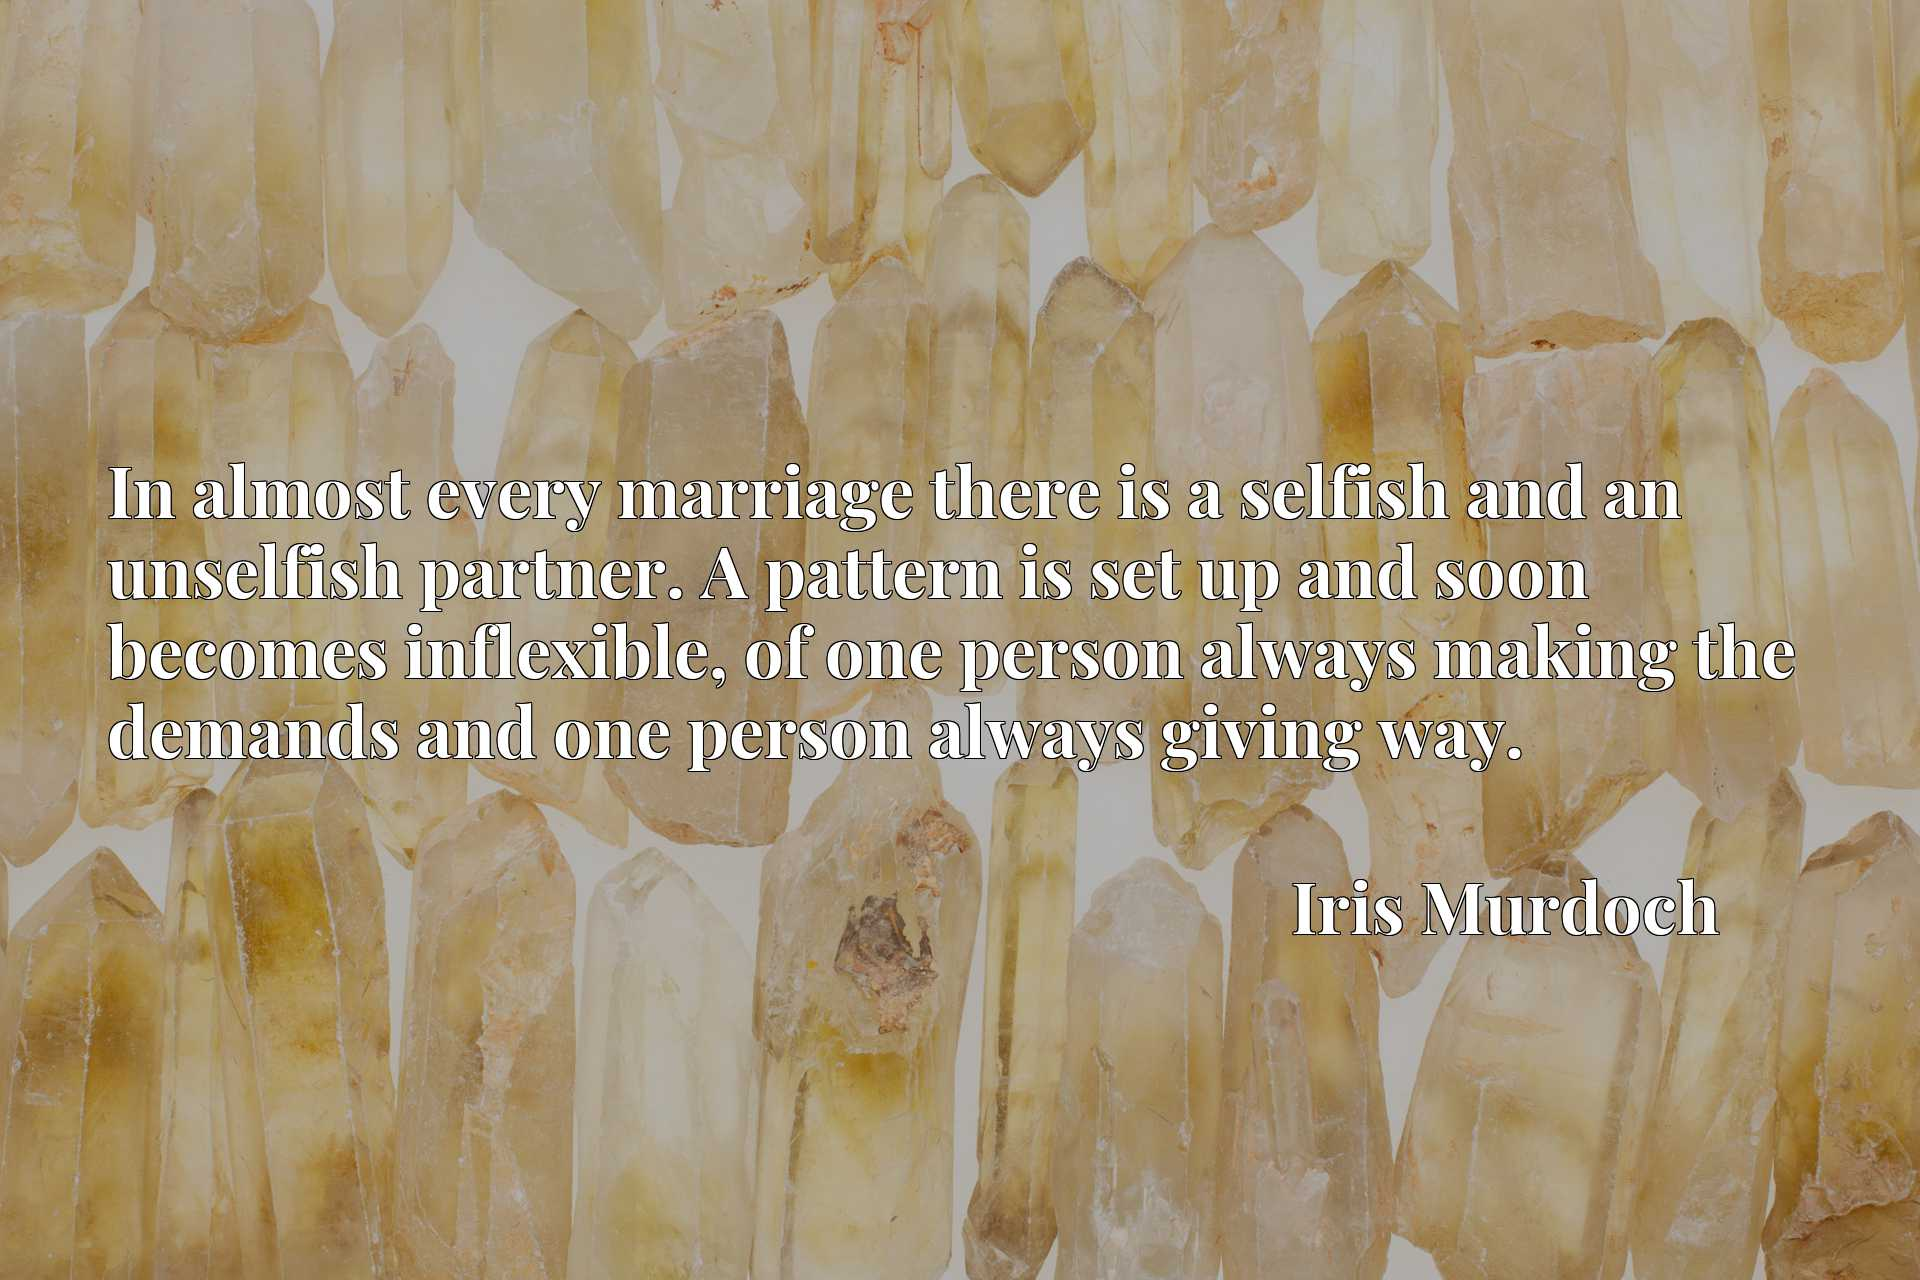 Quote Picture :In almost every marriage there is a selfish and an unselfish partner. A pattern is set up and soon becomes inflexible, of one person always making the demands and one person always giving way.